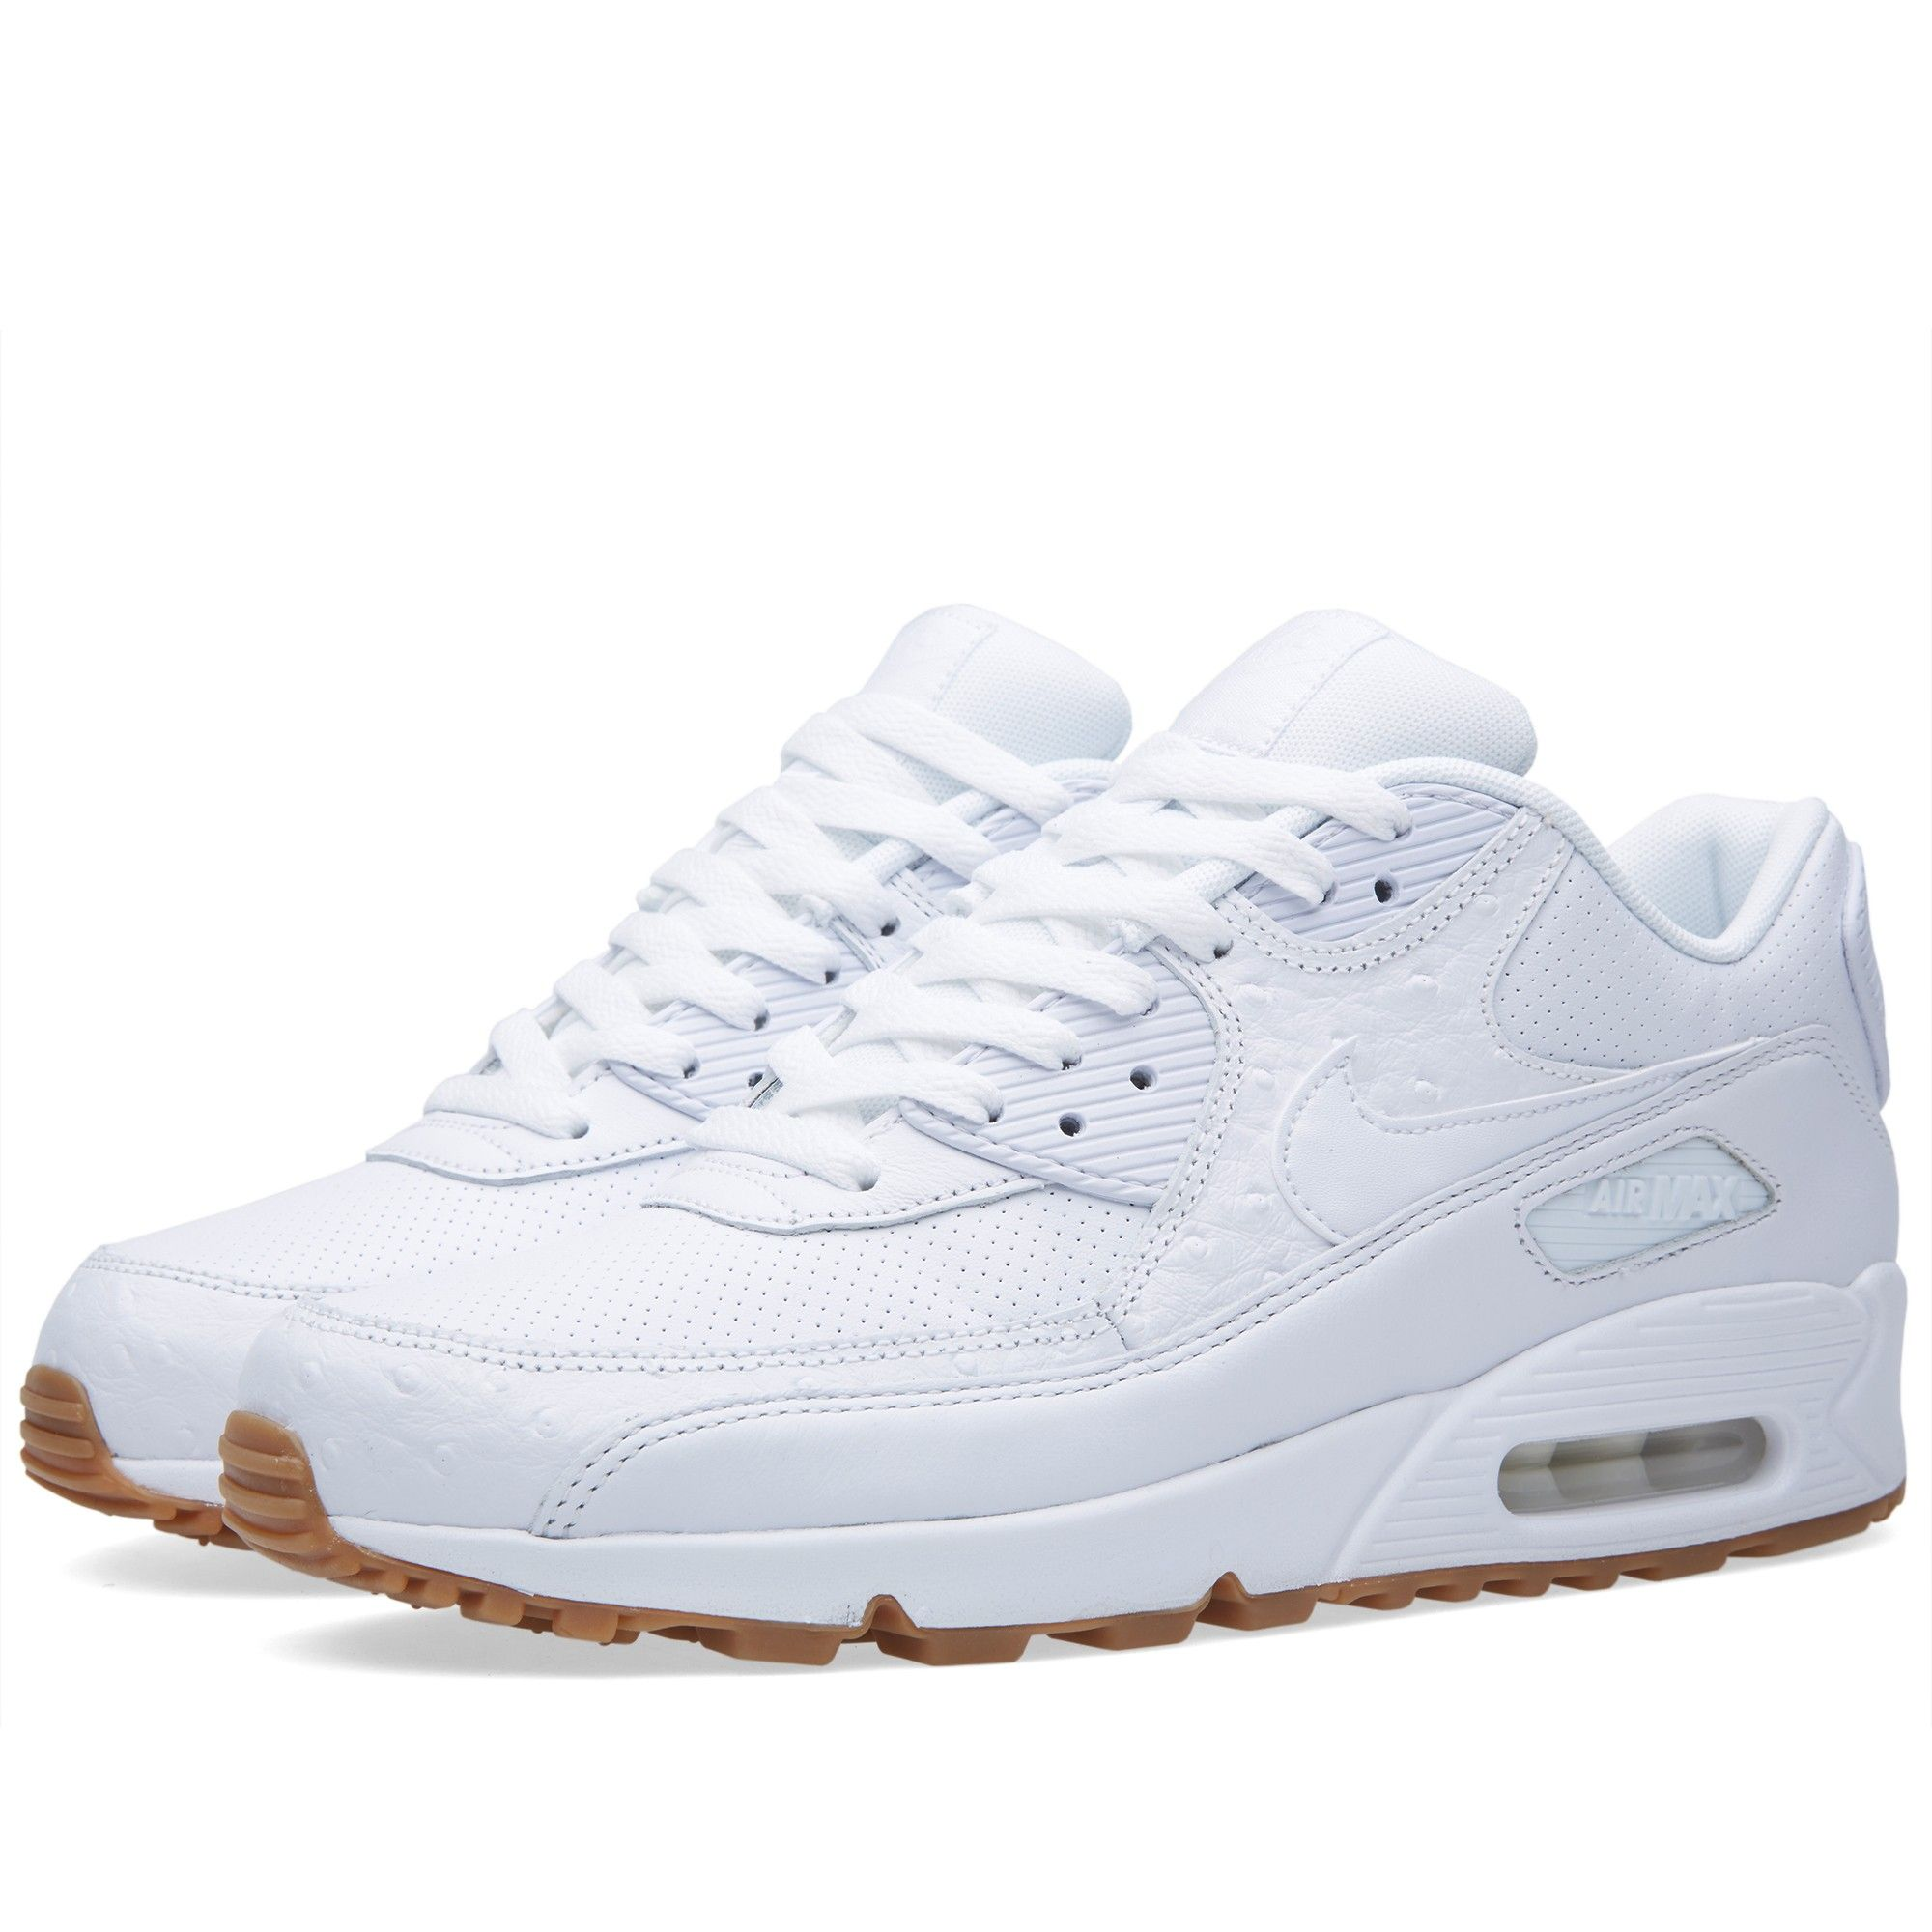 Nike Air Max 90 Leather PA | Nike air max, Nike shoes outlet ...